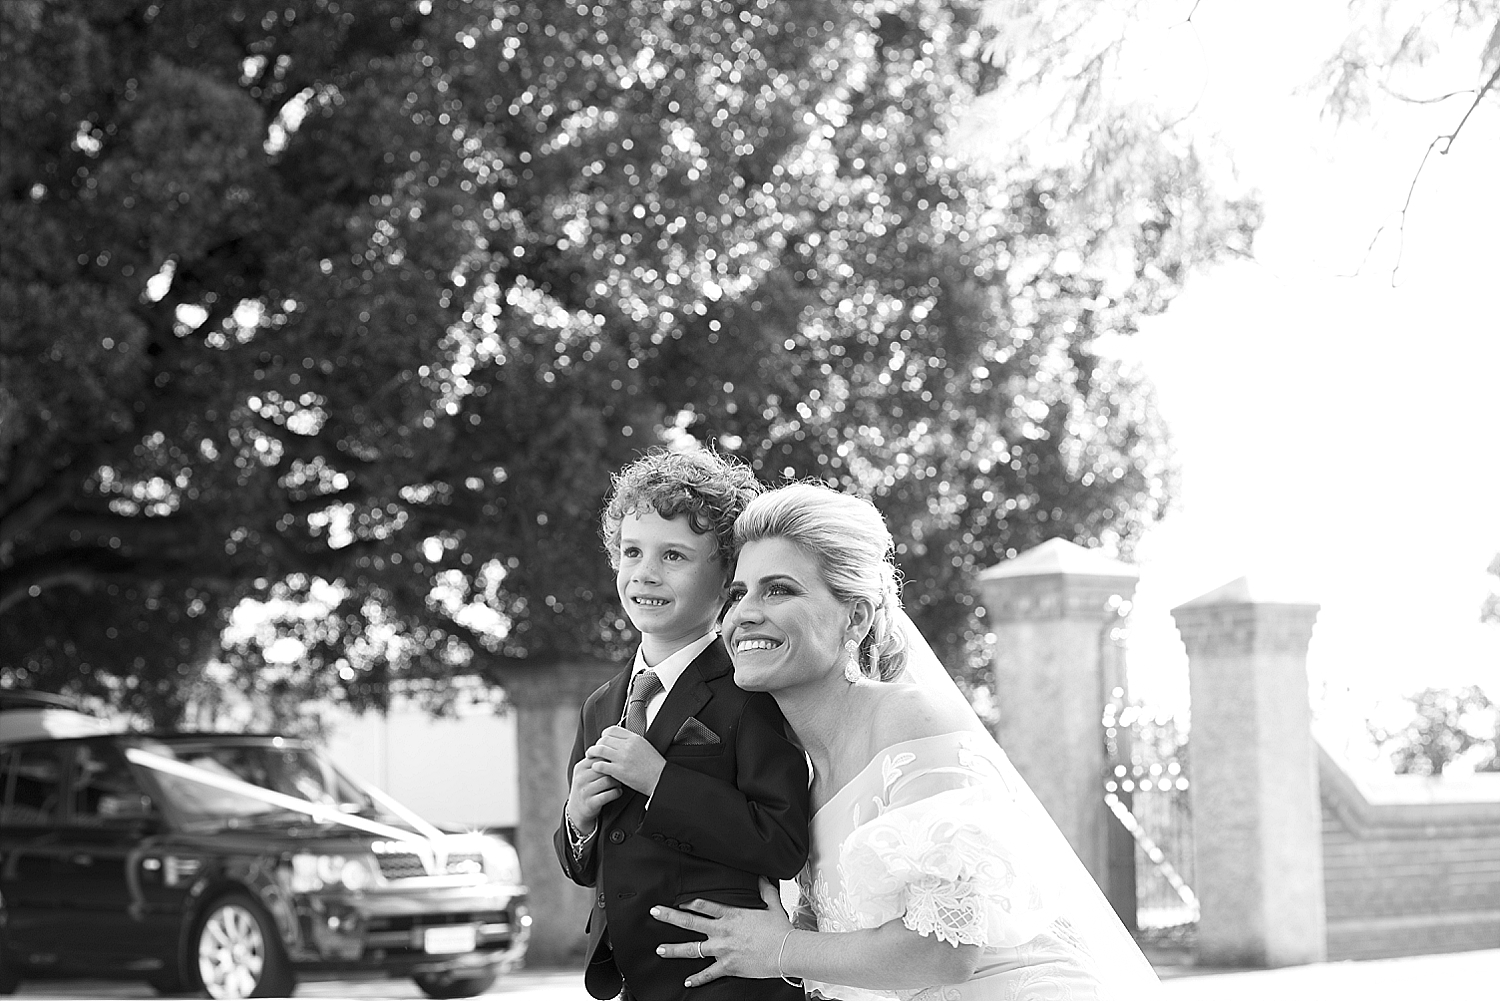 32bride and pageboy wedding perth39.JPG